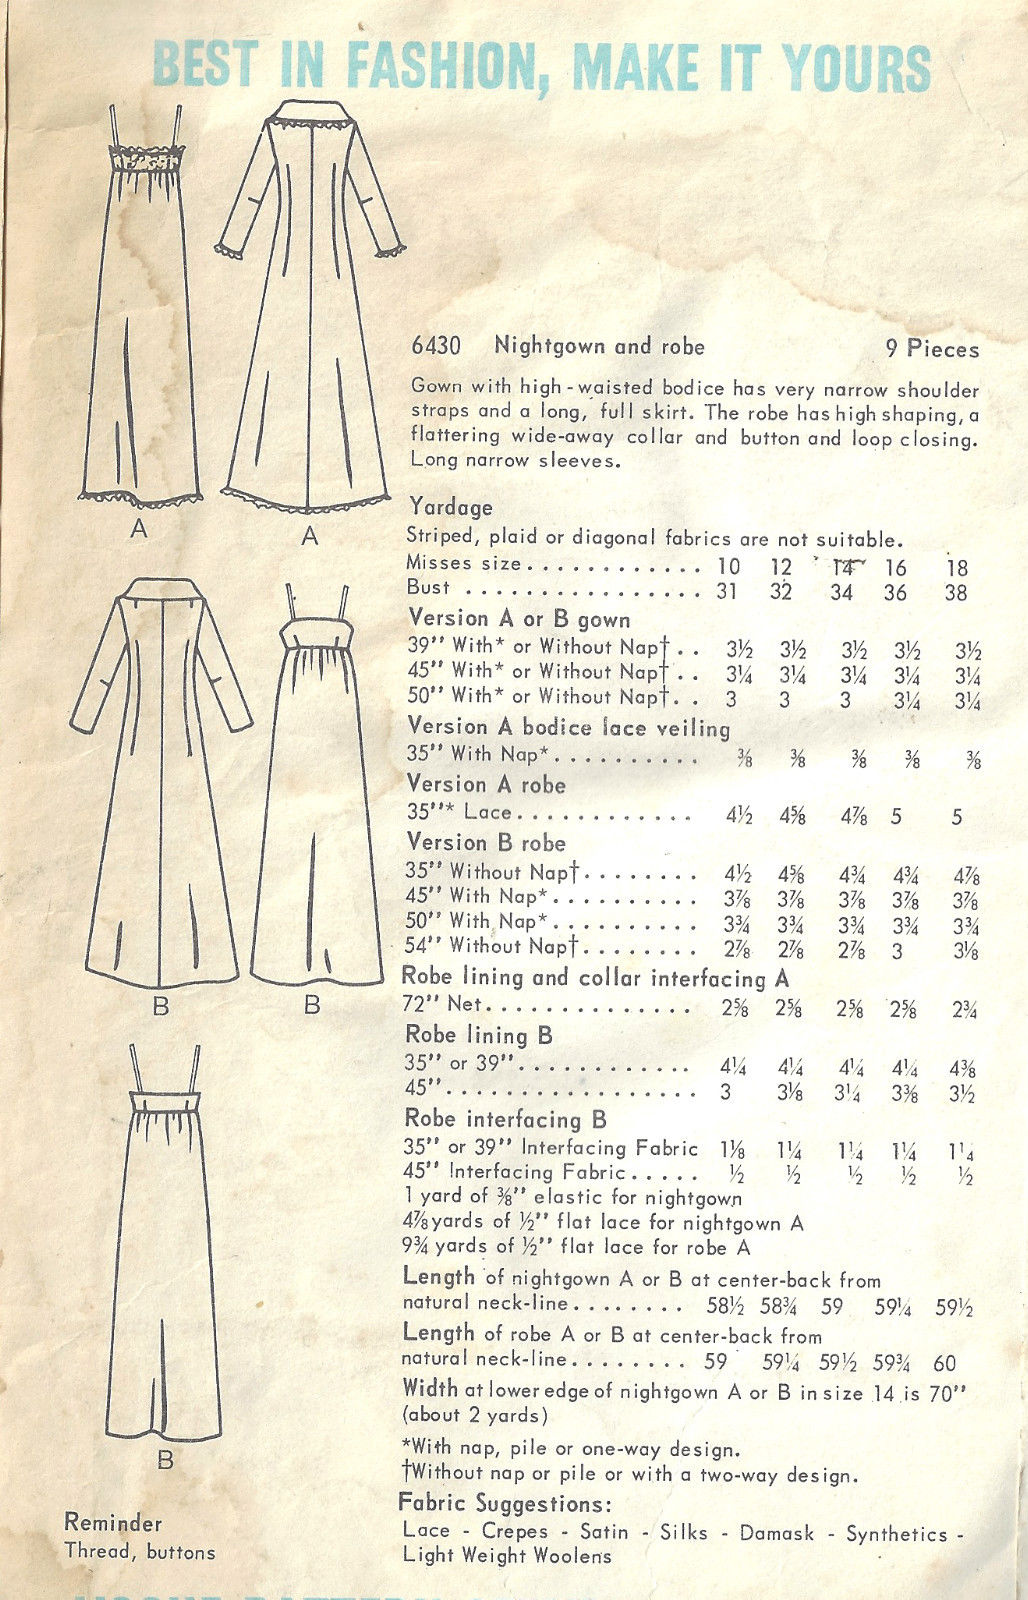 1960s Vintage Vogue Sewing Pattern B36 Nightgown Robe 1652 By Vogue 6430 The Vintage Pattern Shop